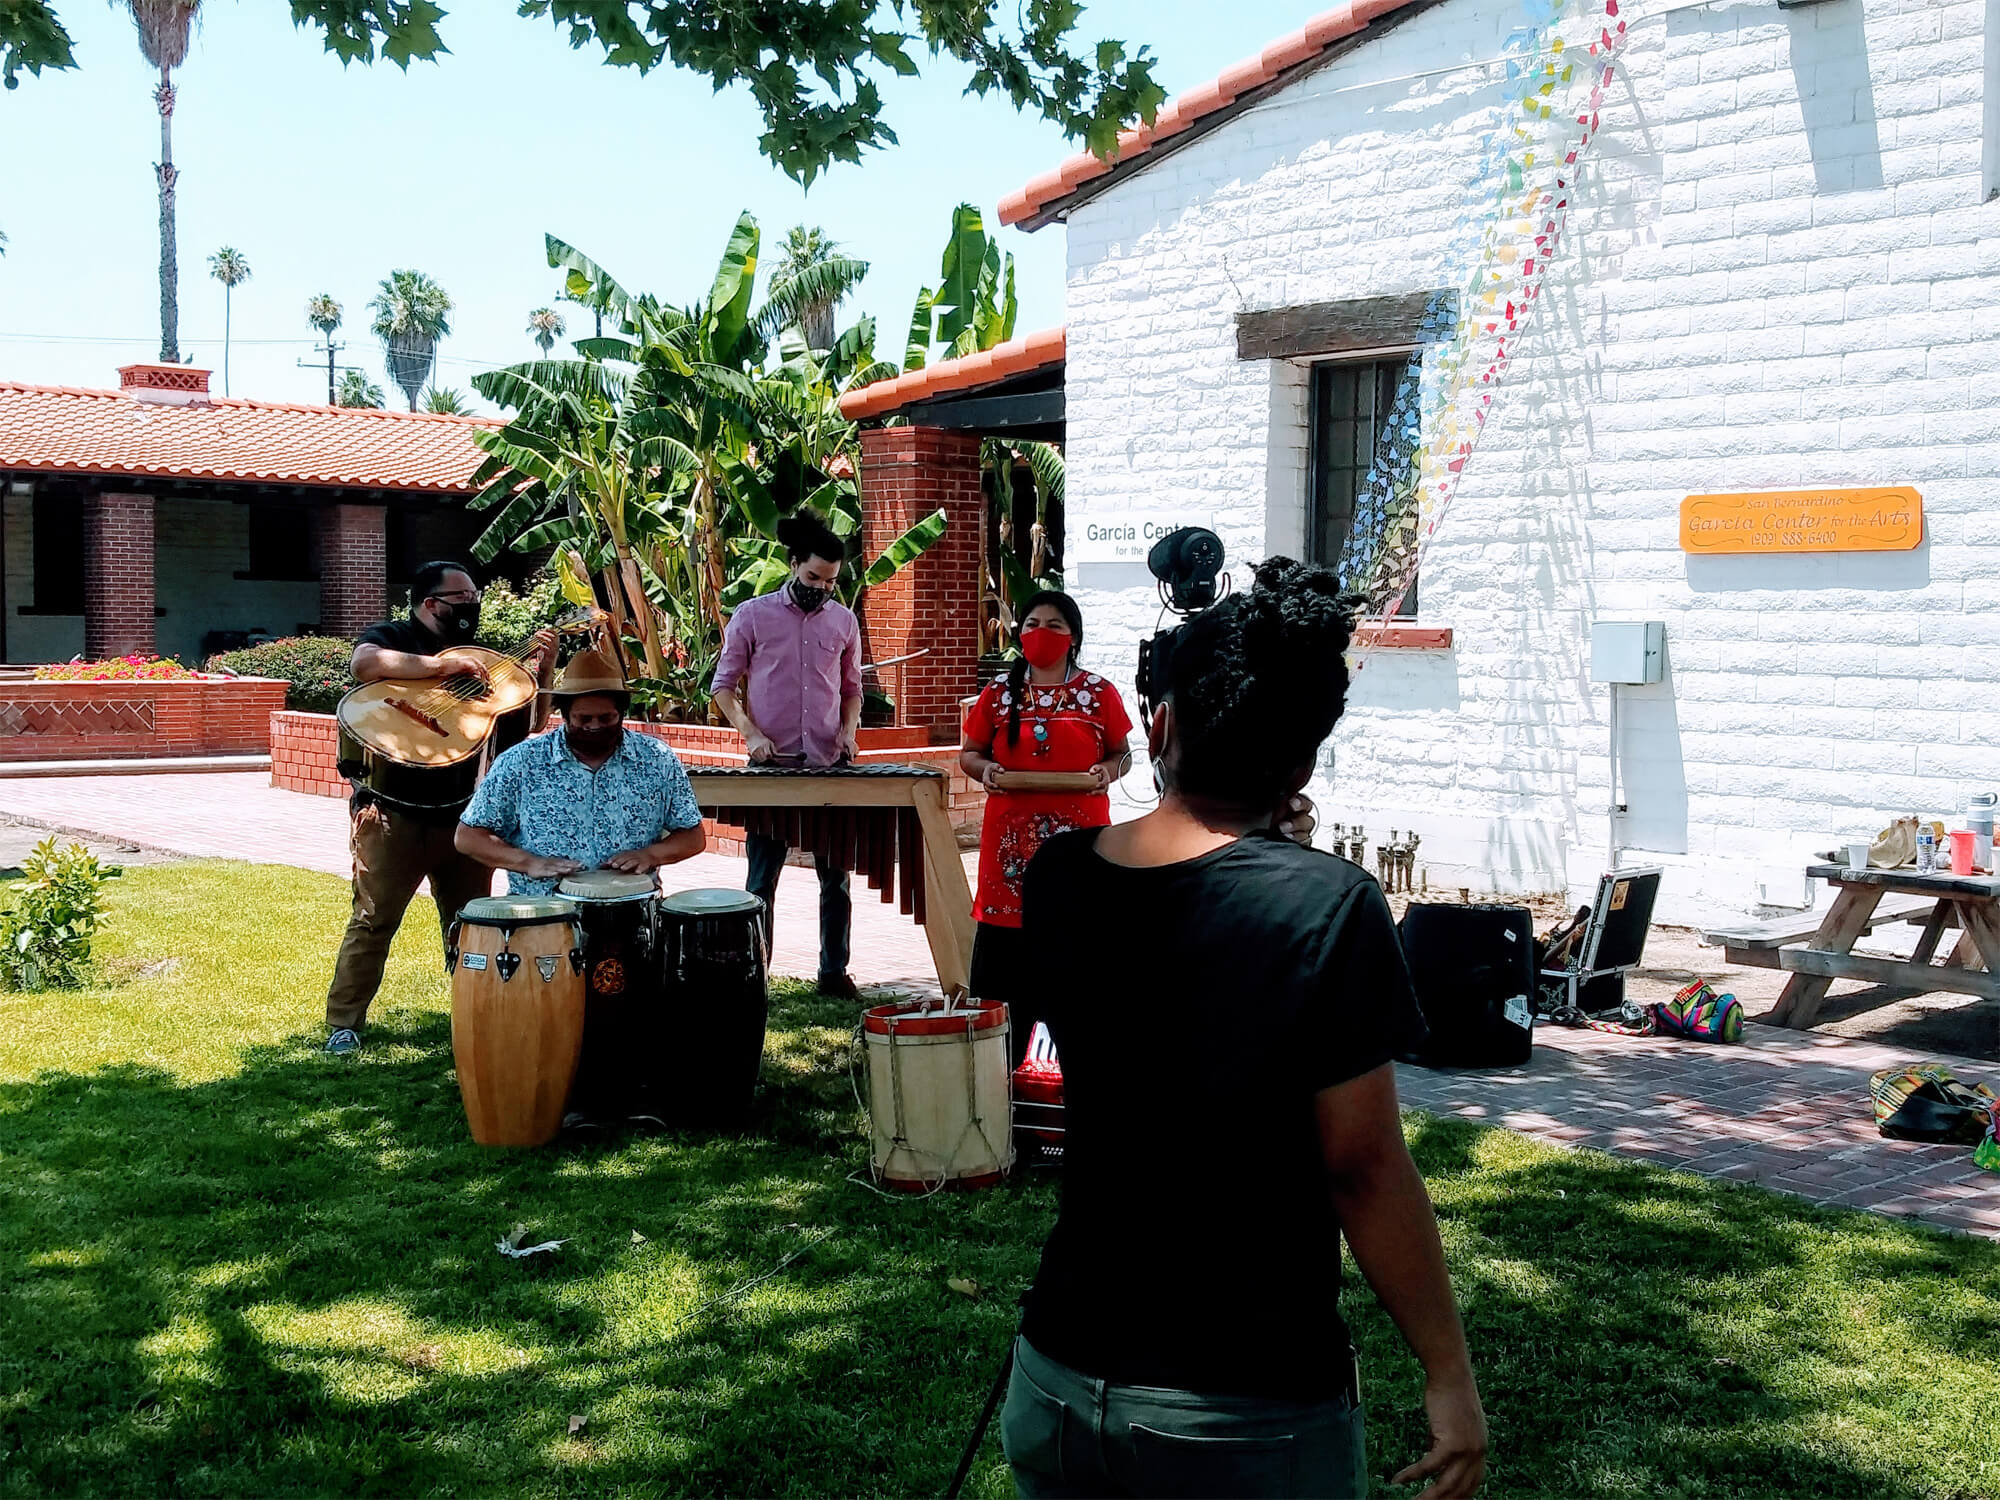 Outdoor Music Performance by Milpa